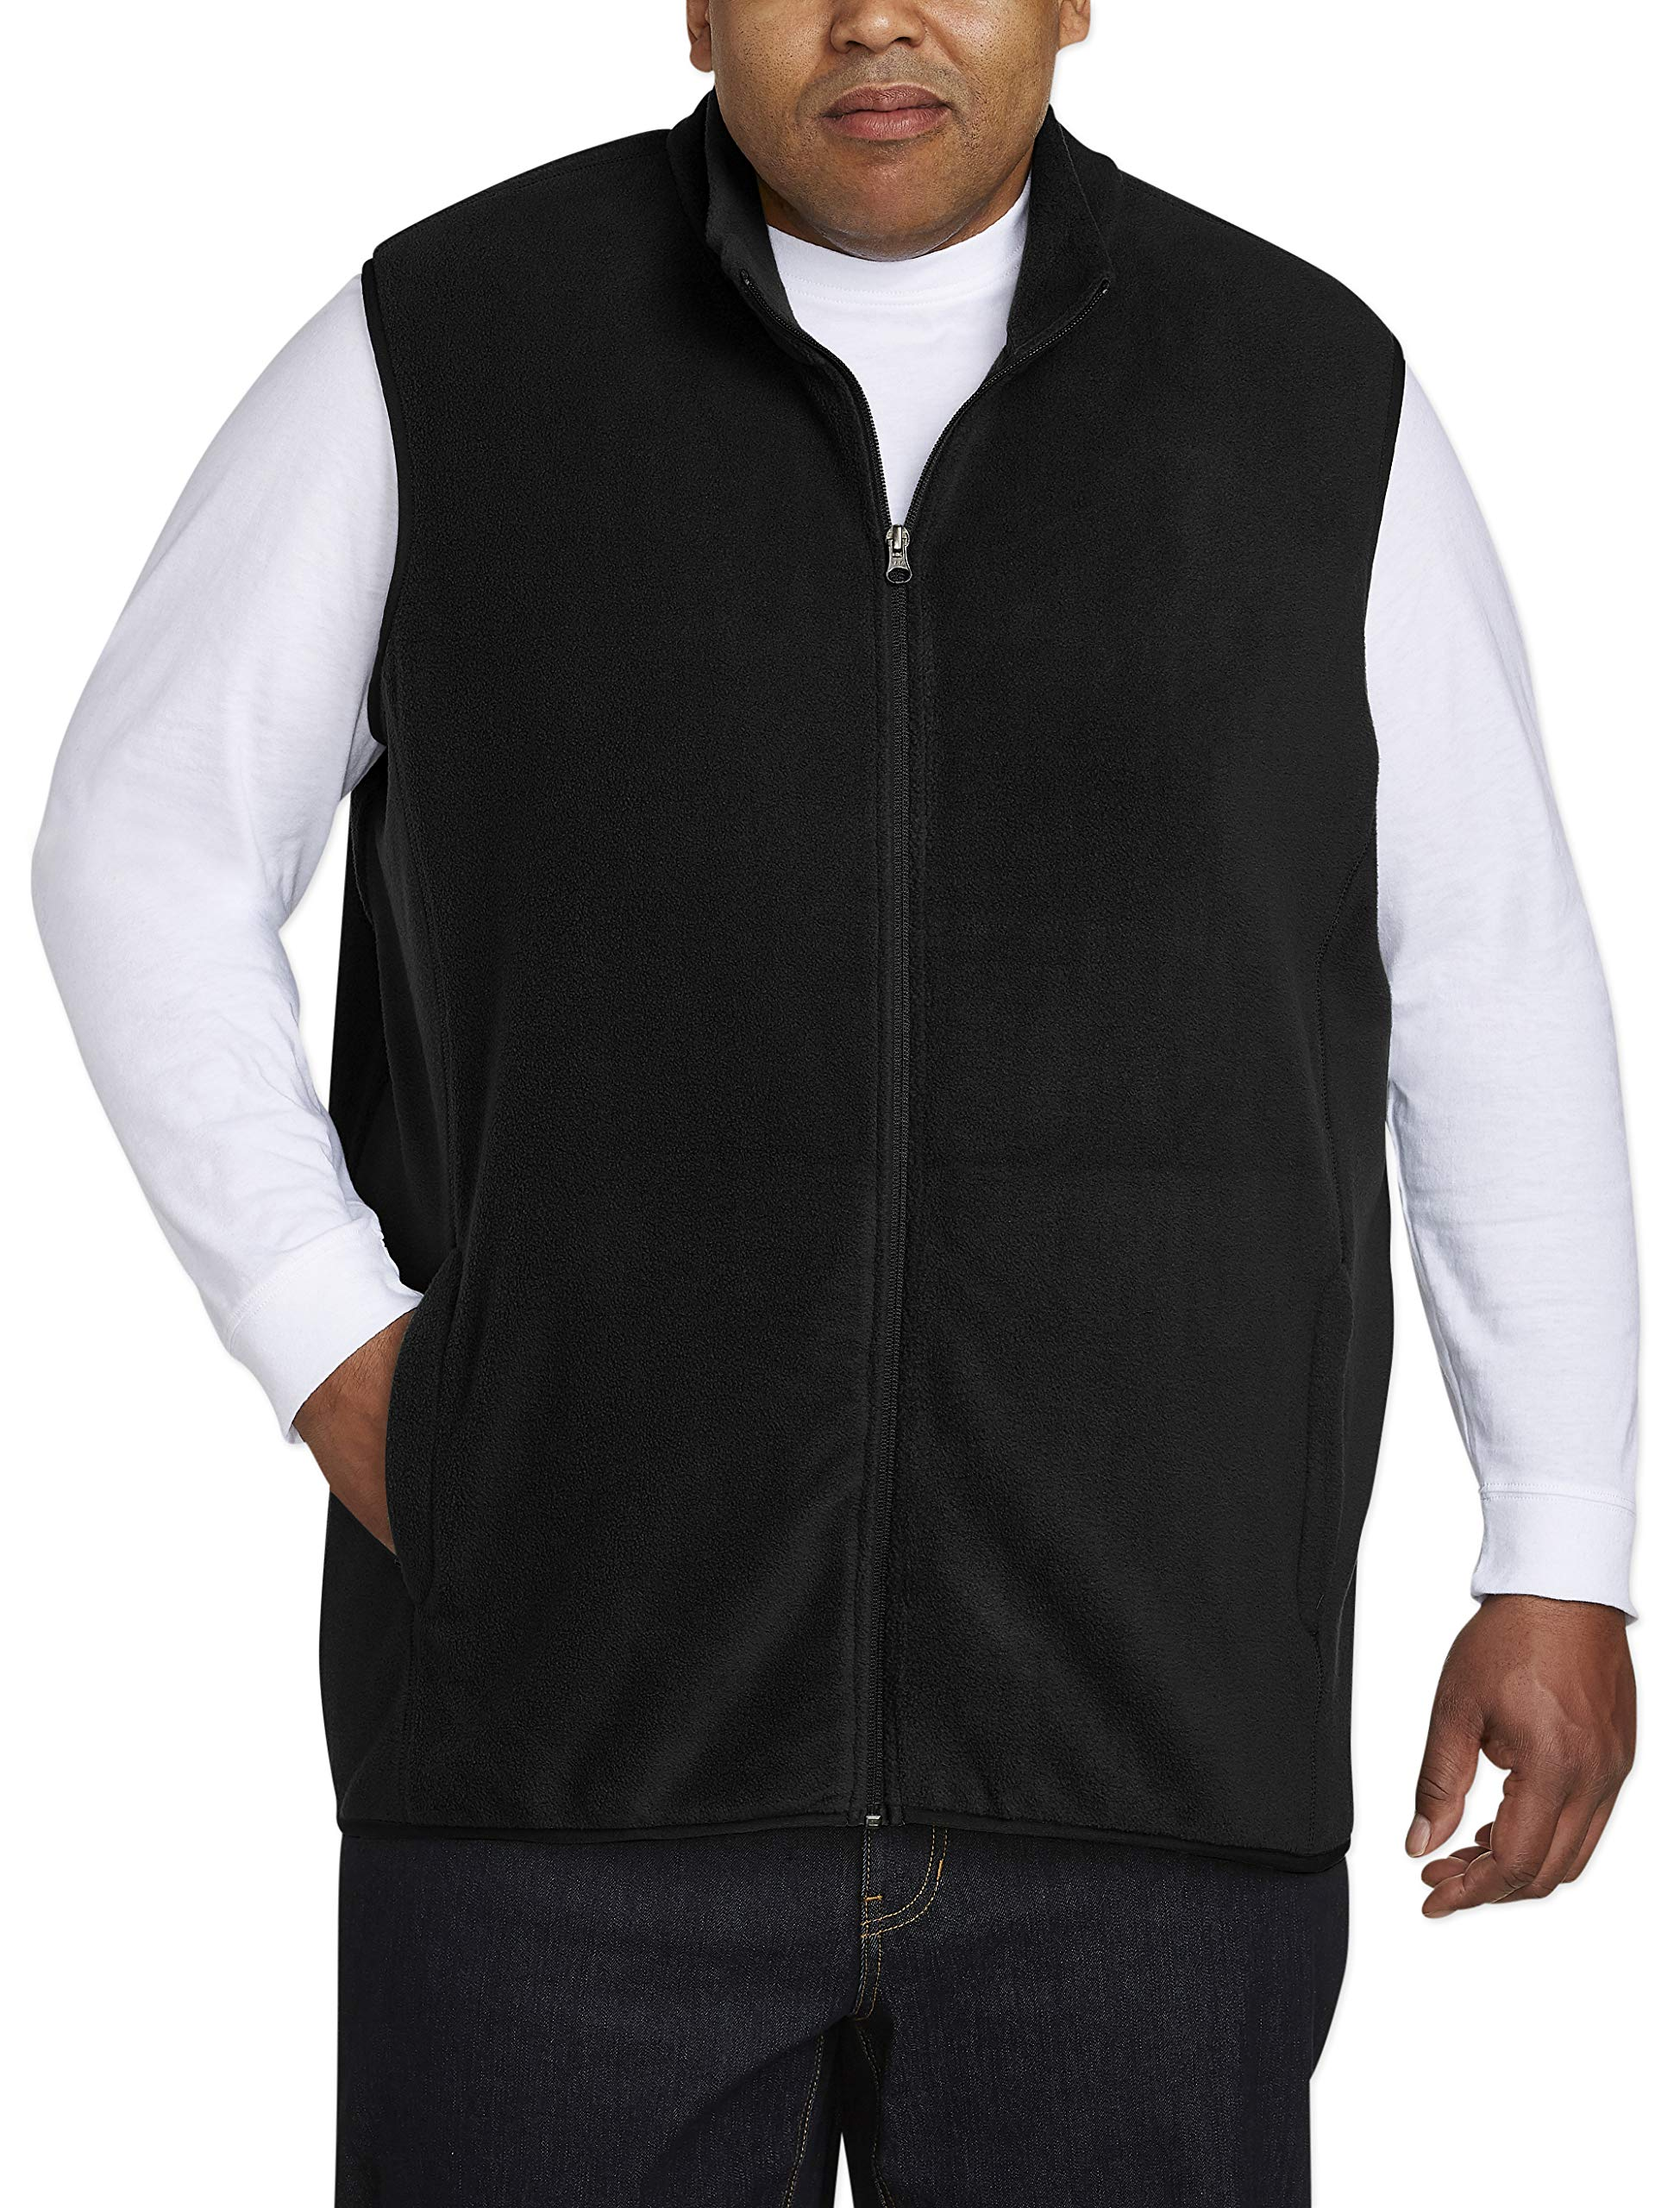 Amazon Essentials Men's Big and Tall Full-Zip Polar Fleece Vest fit by DXL, Black, 3XLT by Amazon Essentials